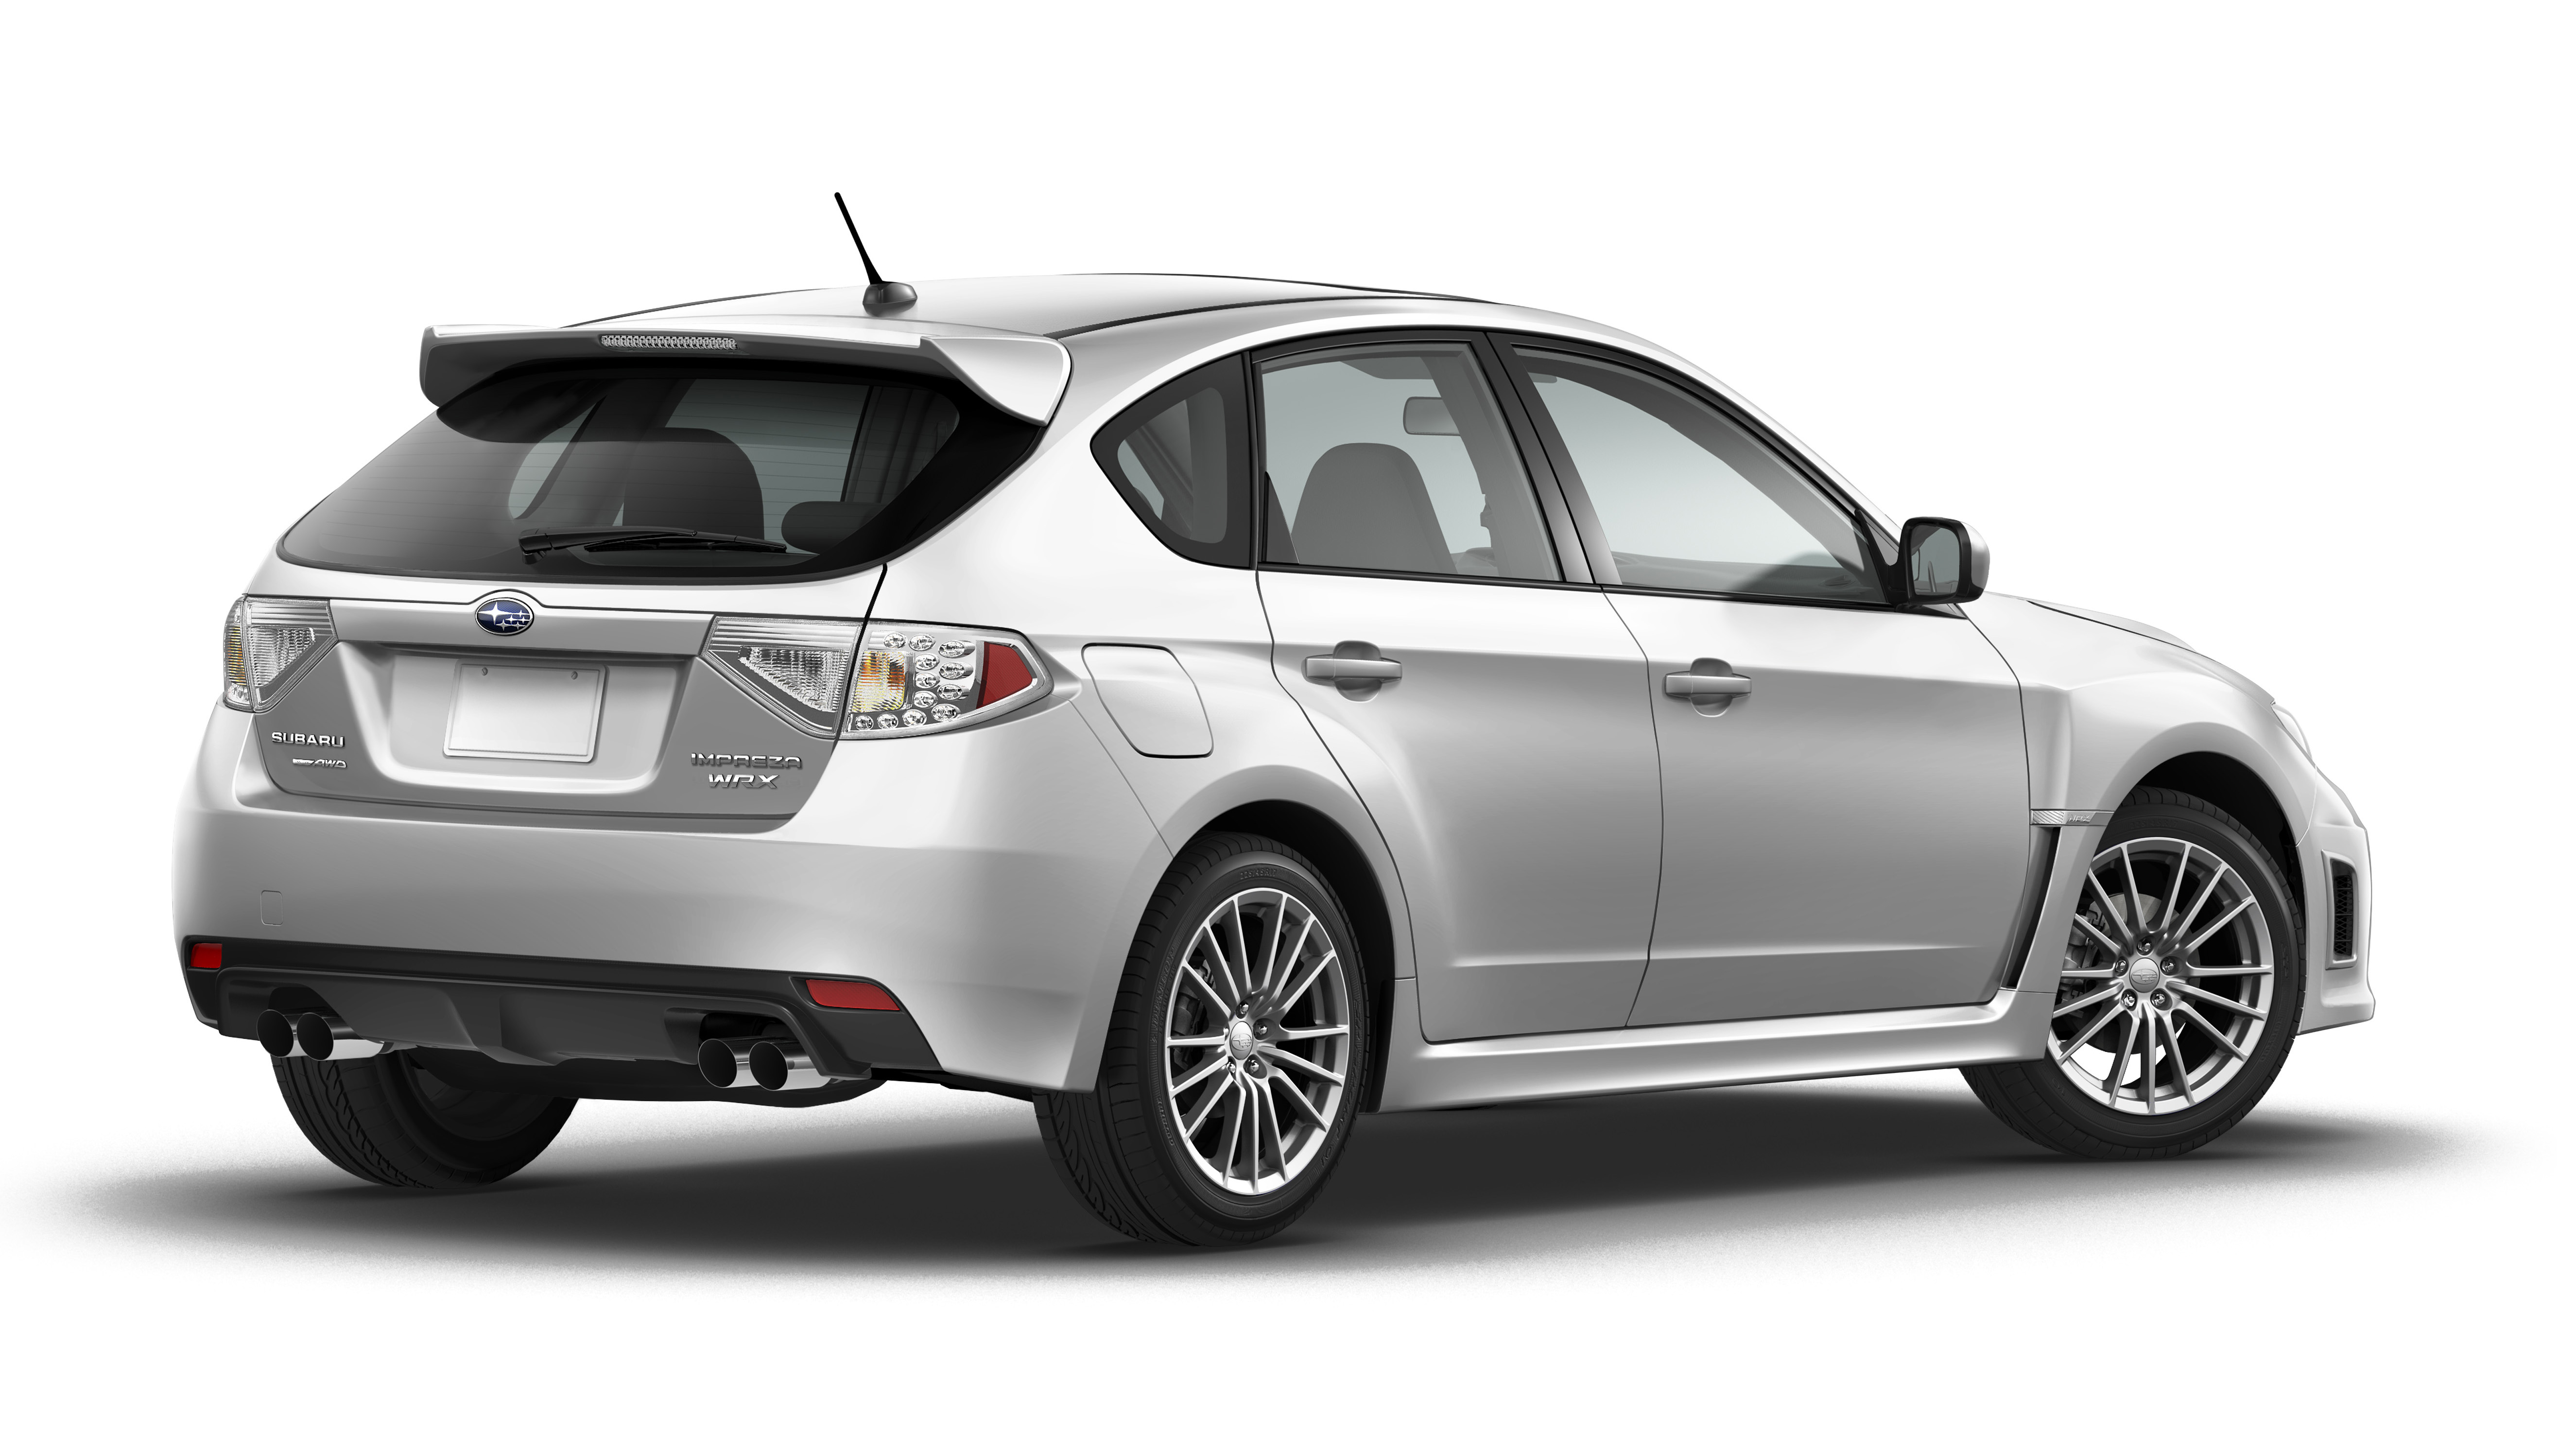 subaru impreza wrx hatchback 2011 cartype. Black Bedroom Furniture Sets. Home Design Ideas